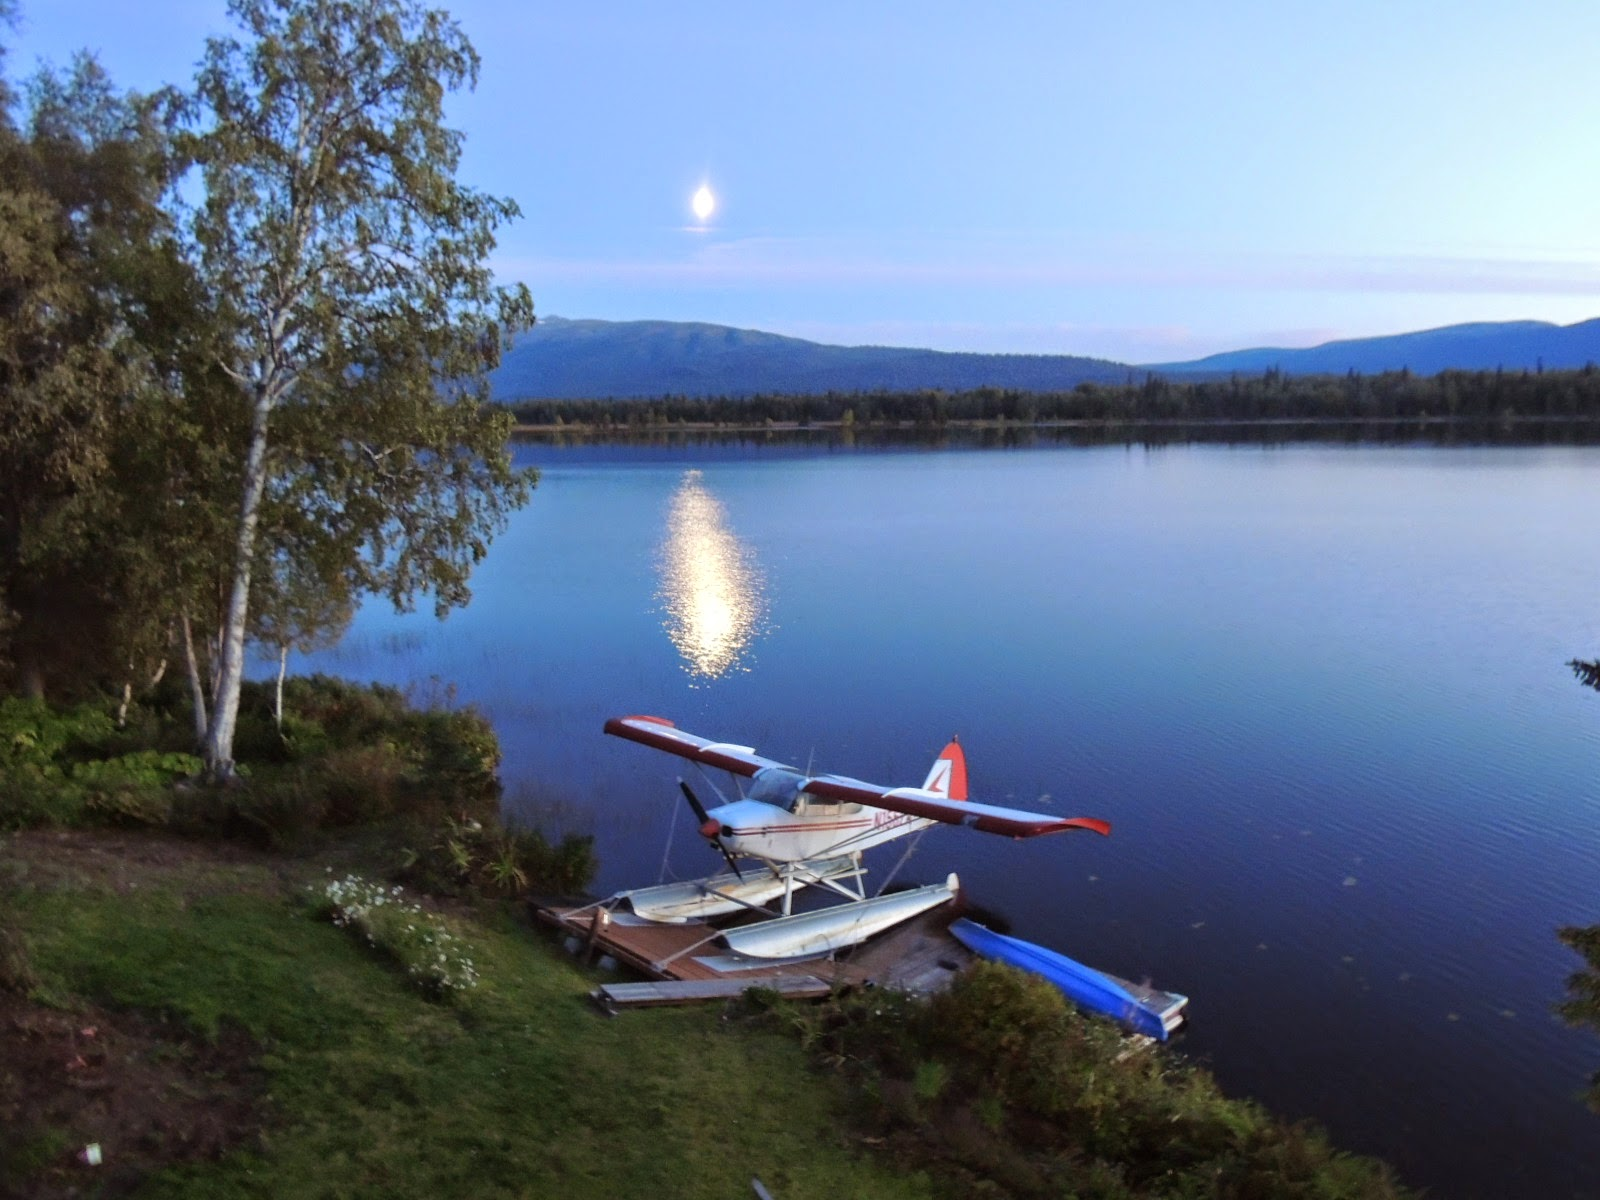 Alaska bush life off road off grid float plane differences from